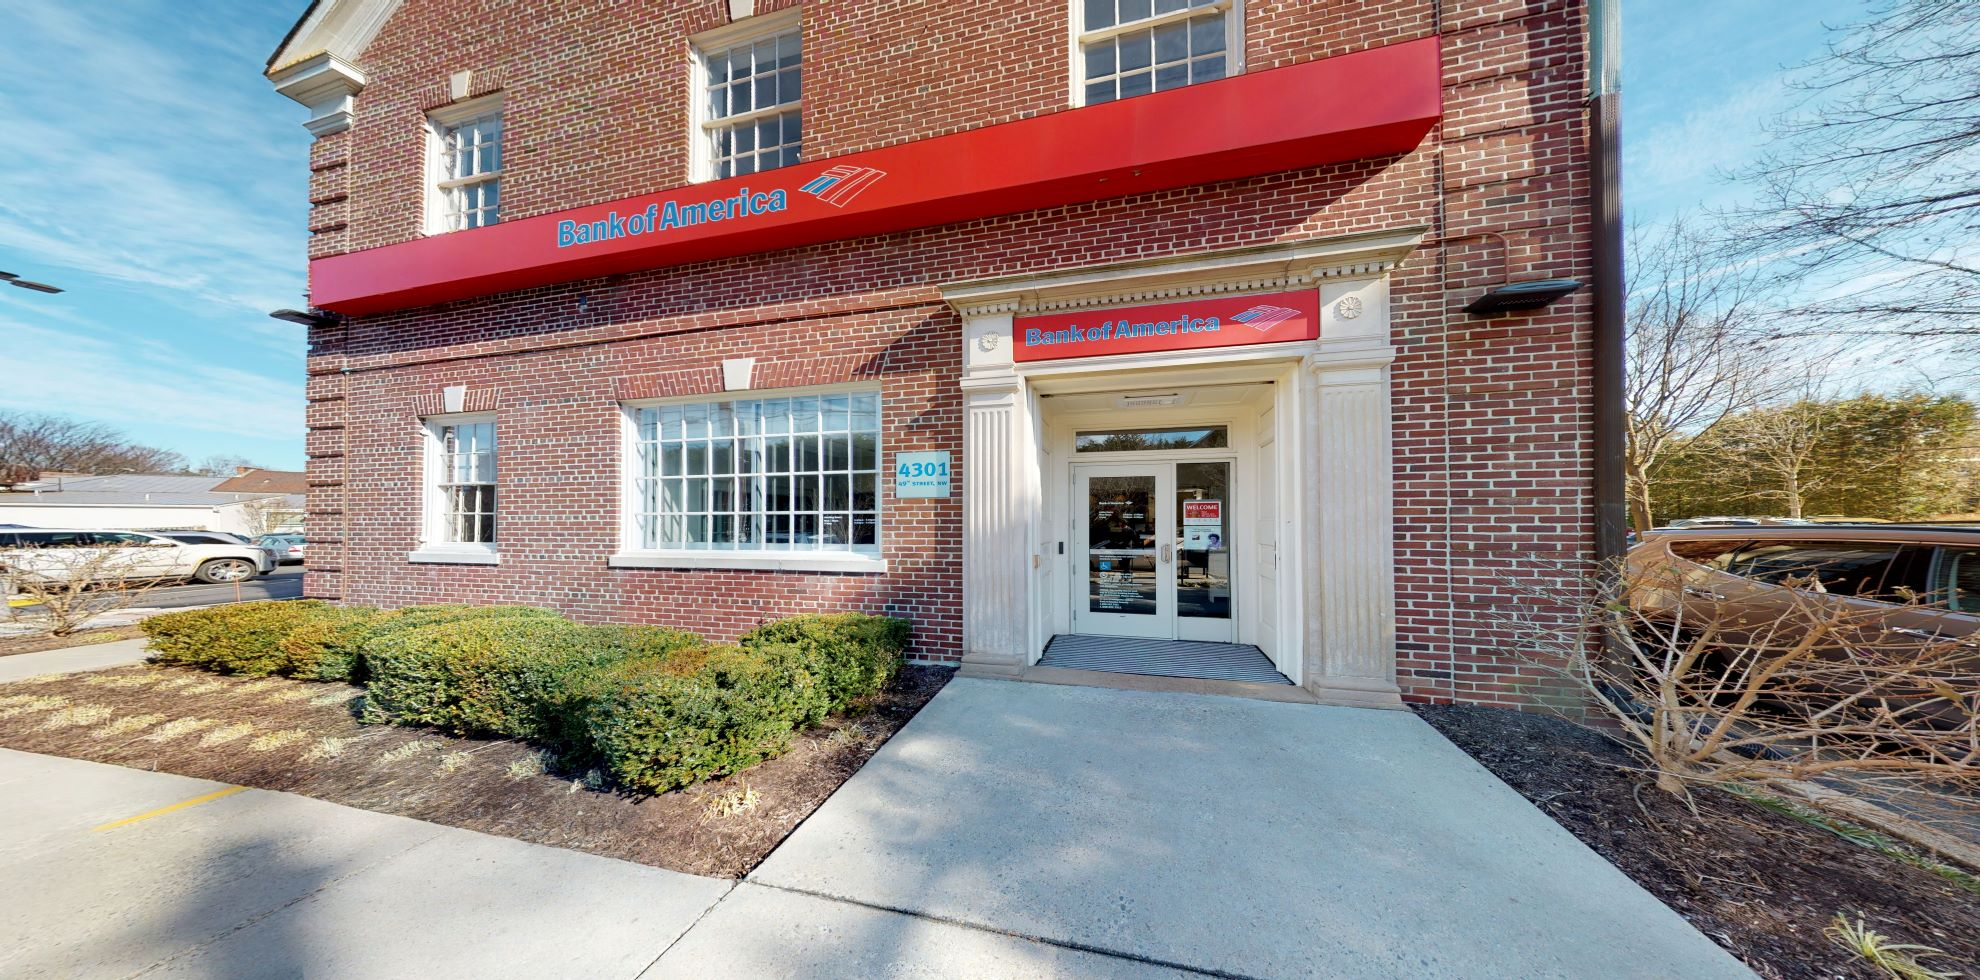 Bank of America financial center with walk-up ATM | 4301 49th St NW, Washington, DC 20016